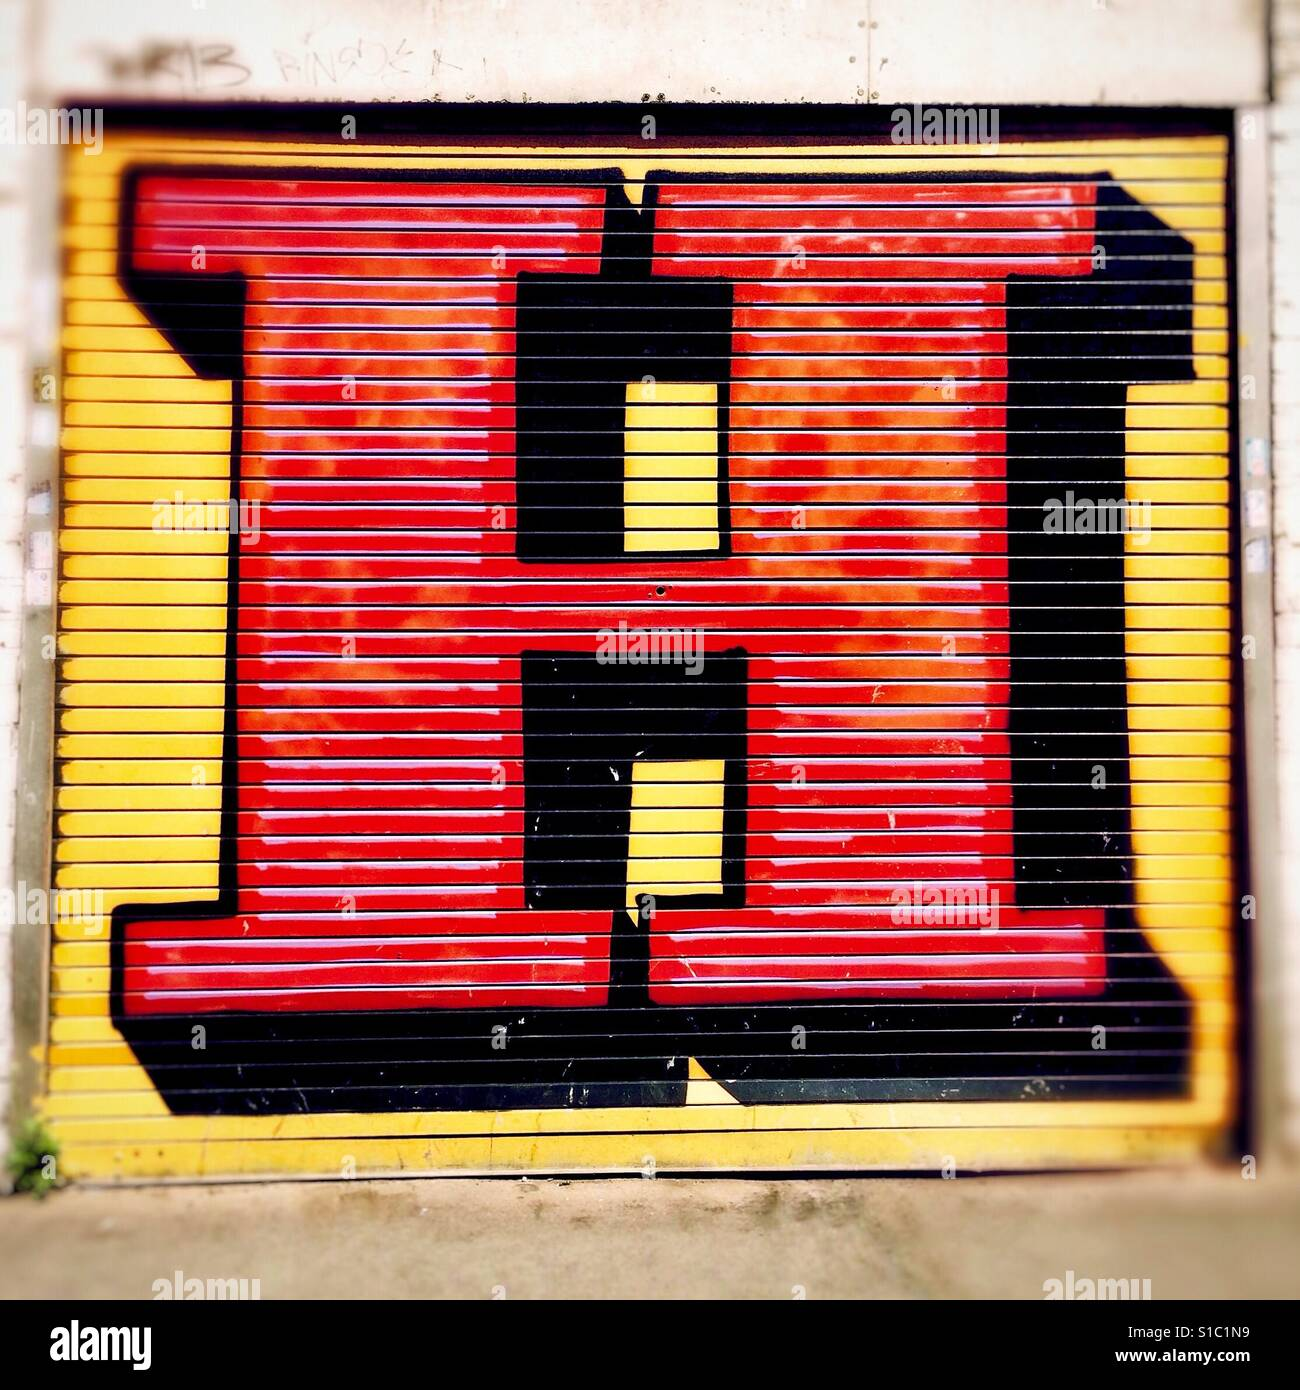 Detail from graffiti art by street artist Ben Eine, showing a colourful, stylised letter H painted onto shutters. - Stock Image